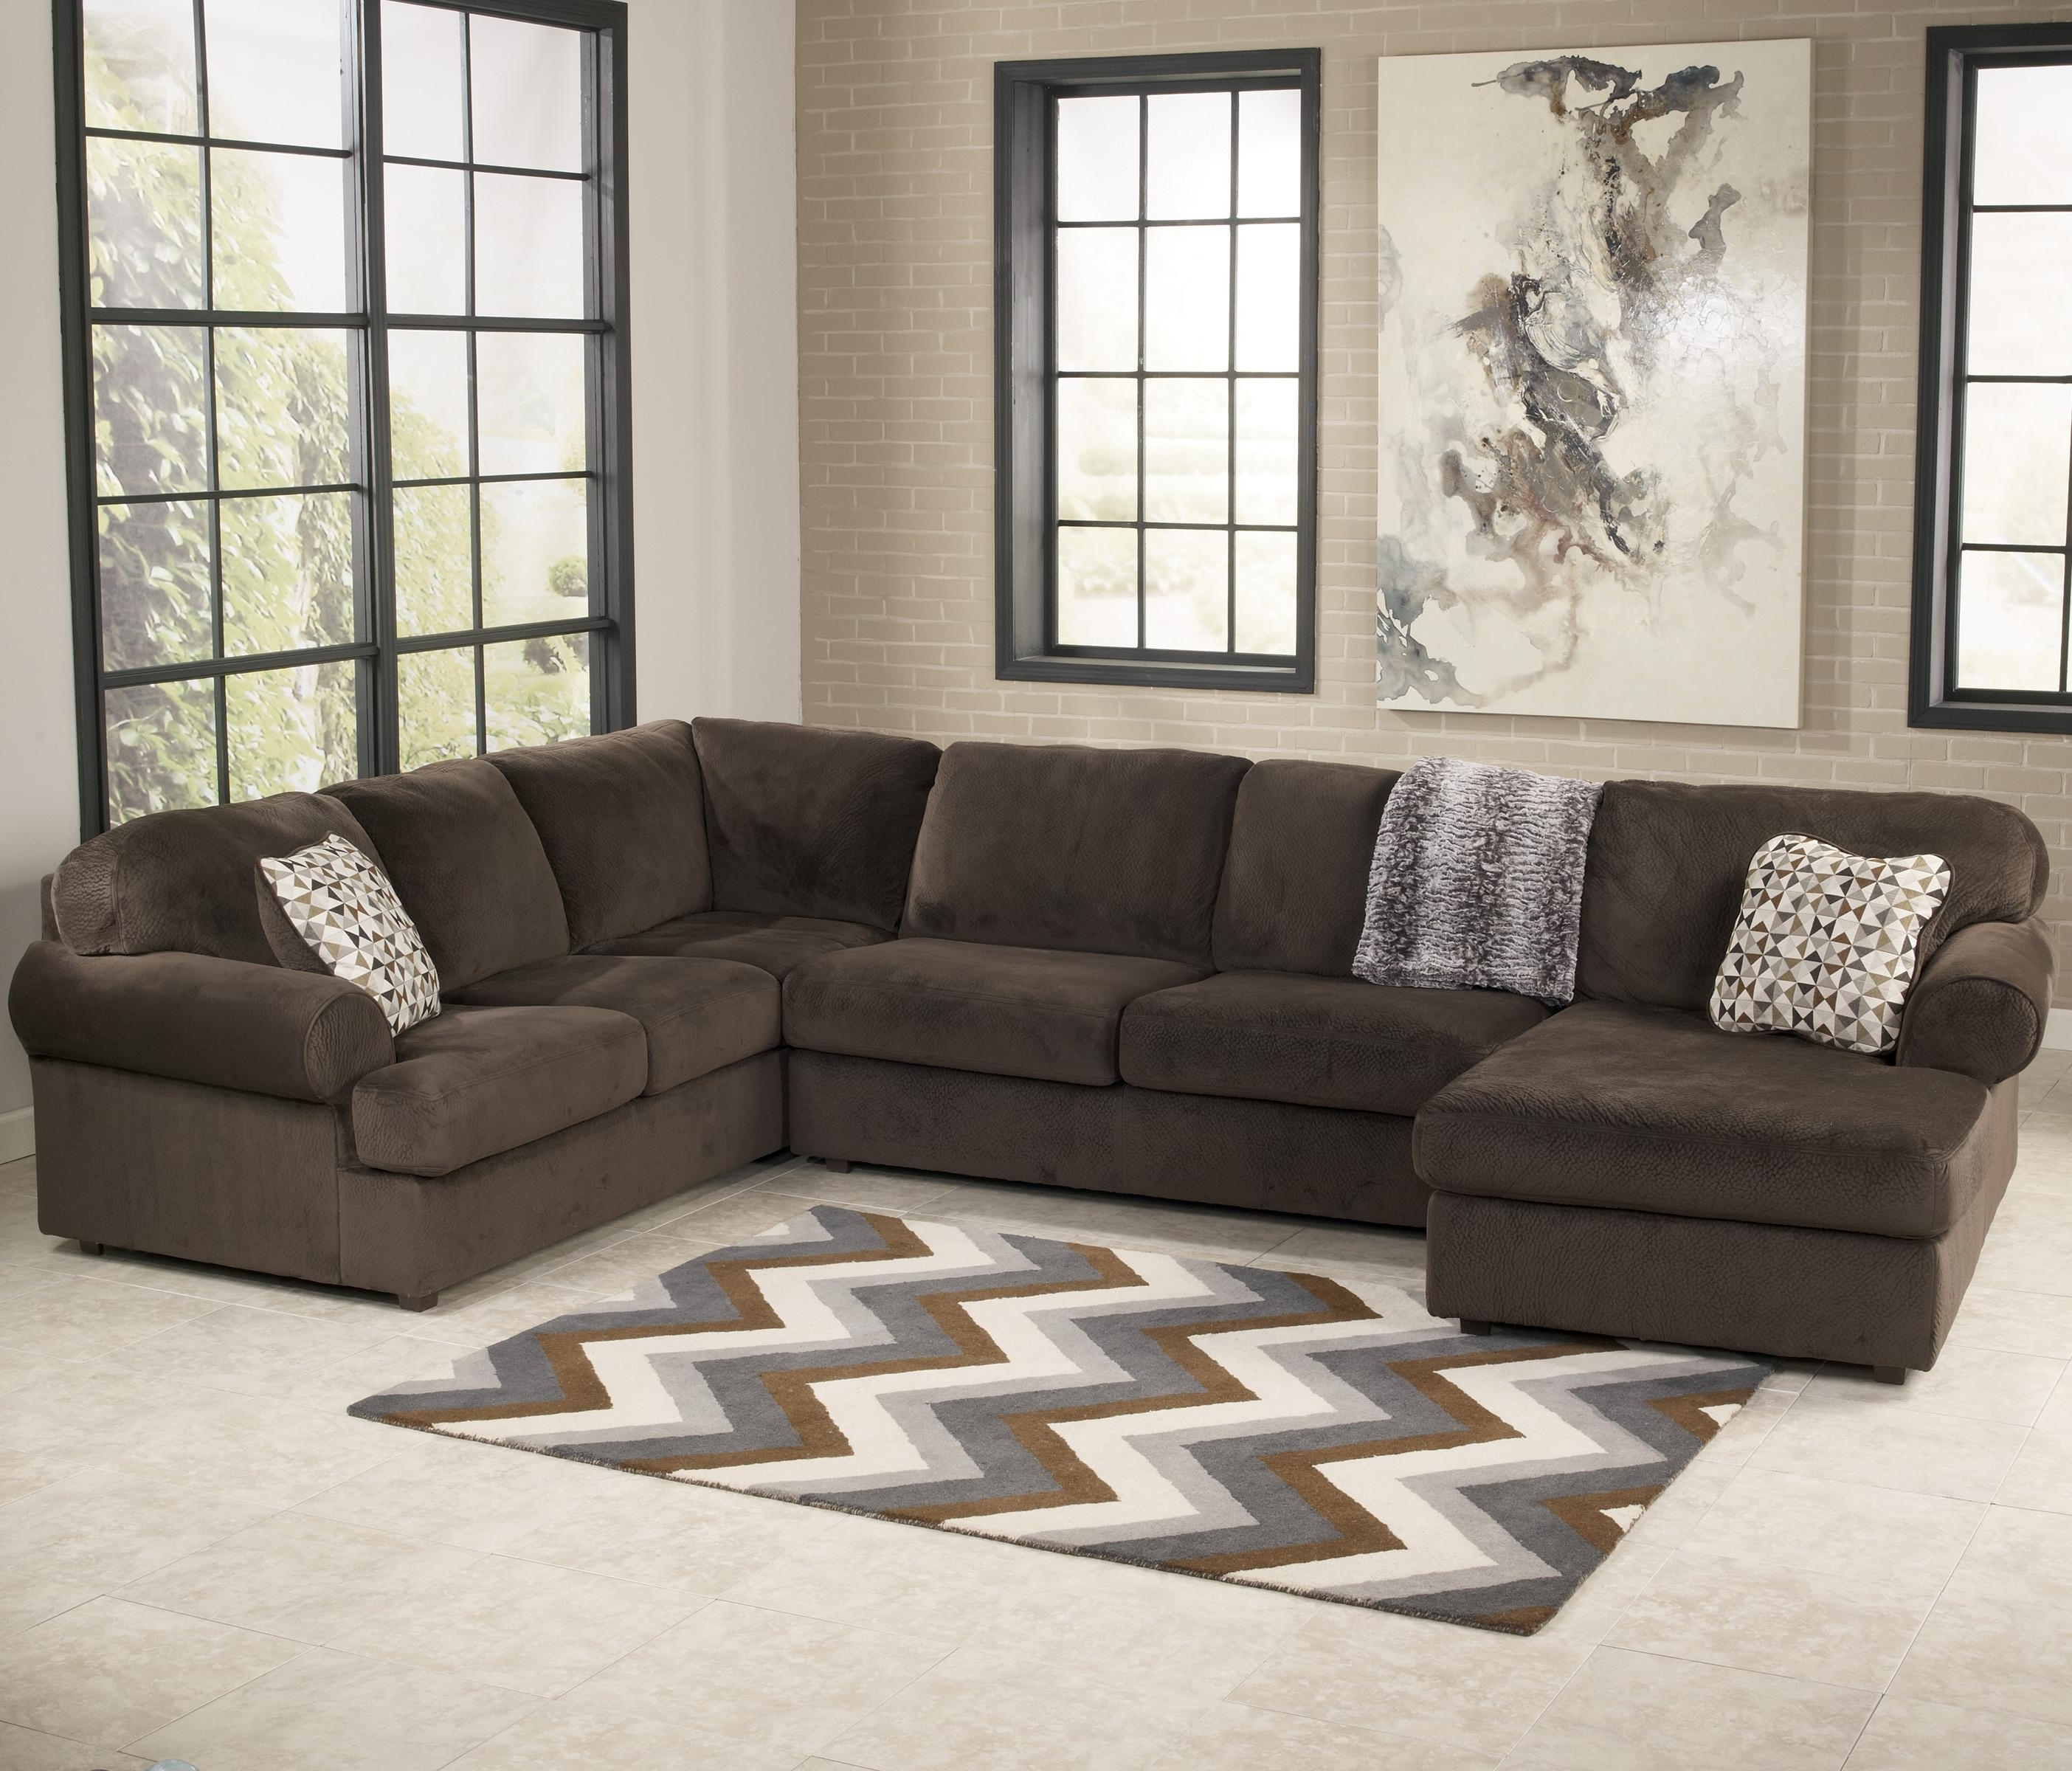 Ashley Furniture Sofa Chaises With Current Ashley Signature Design Jessa Place – Chocolate Casual Sectional (View 5 of 15)